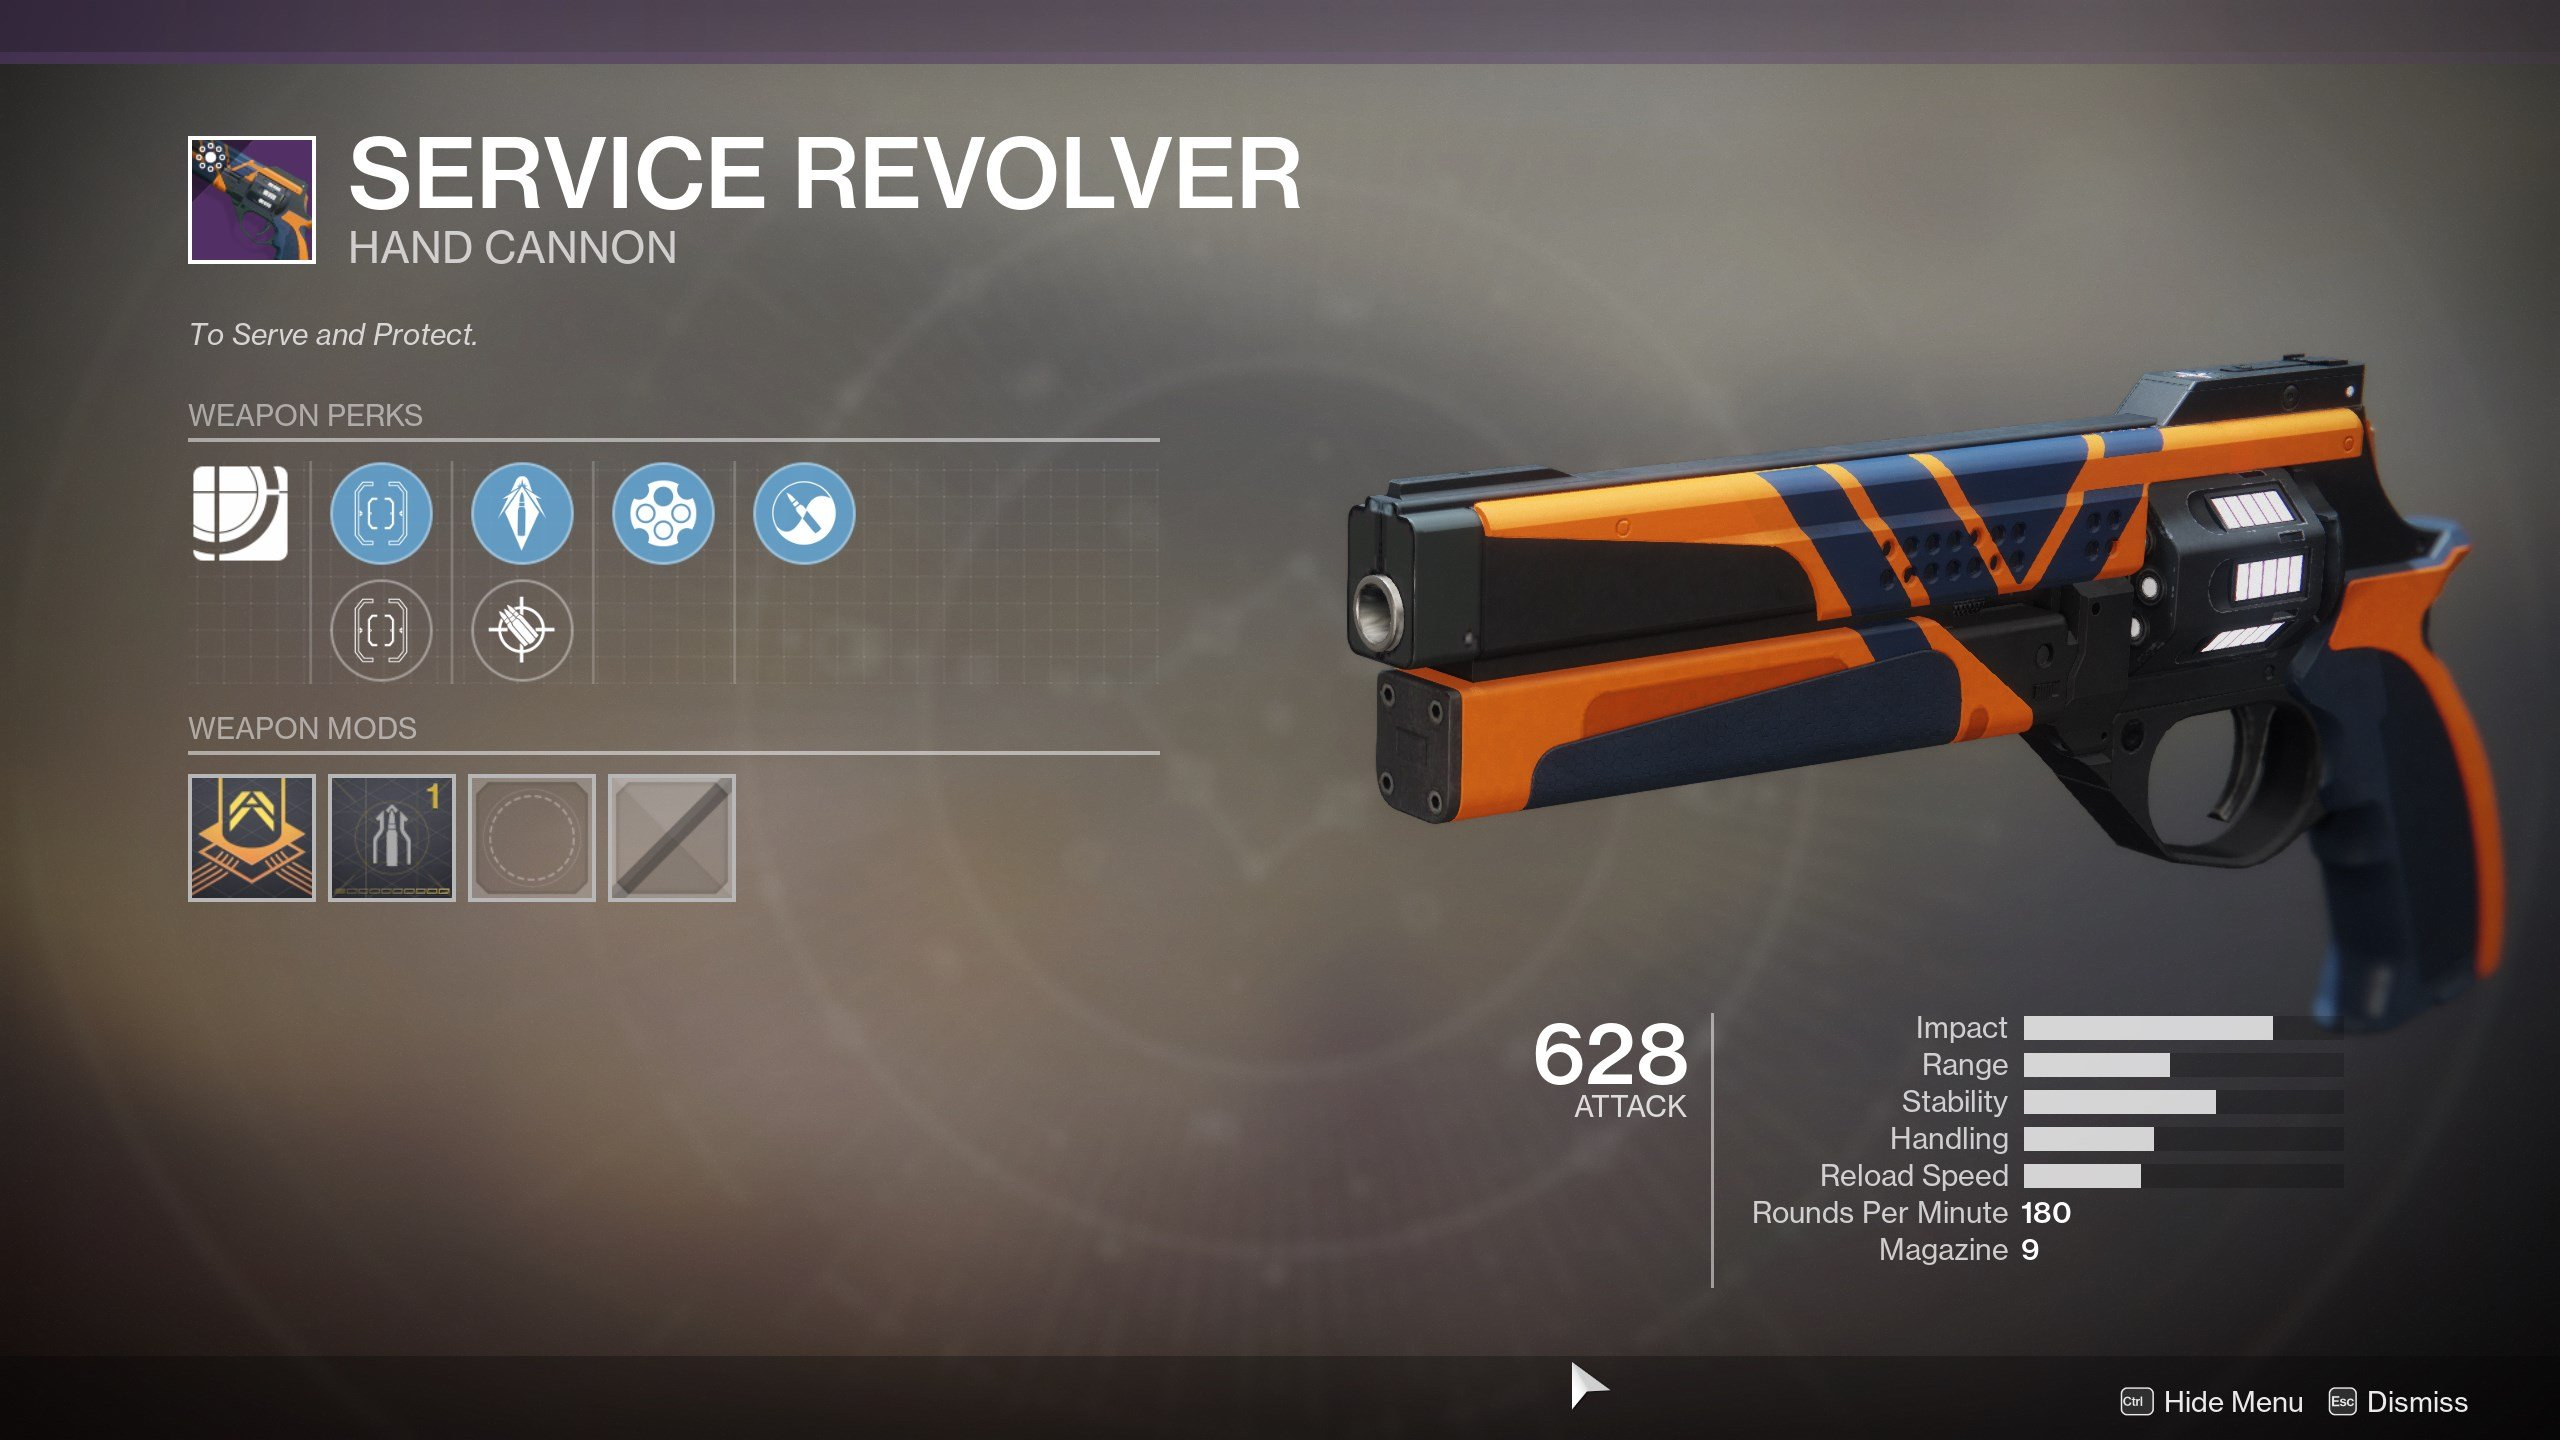 Get the Service Revolver in Destiny 2